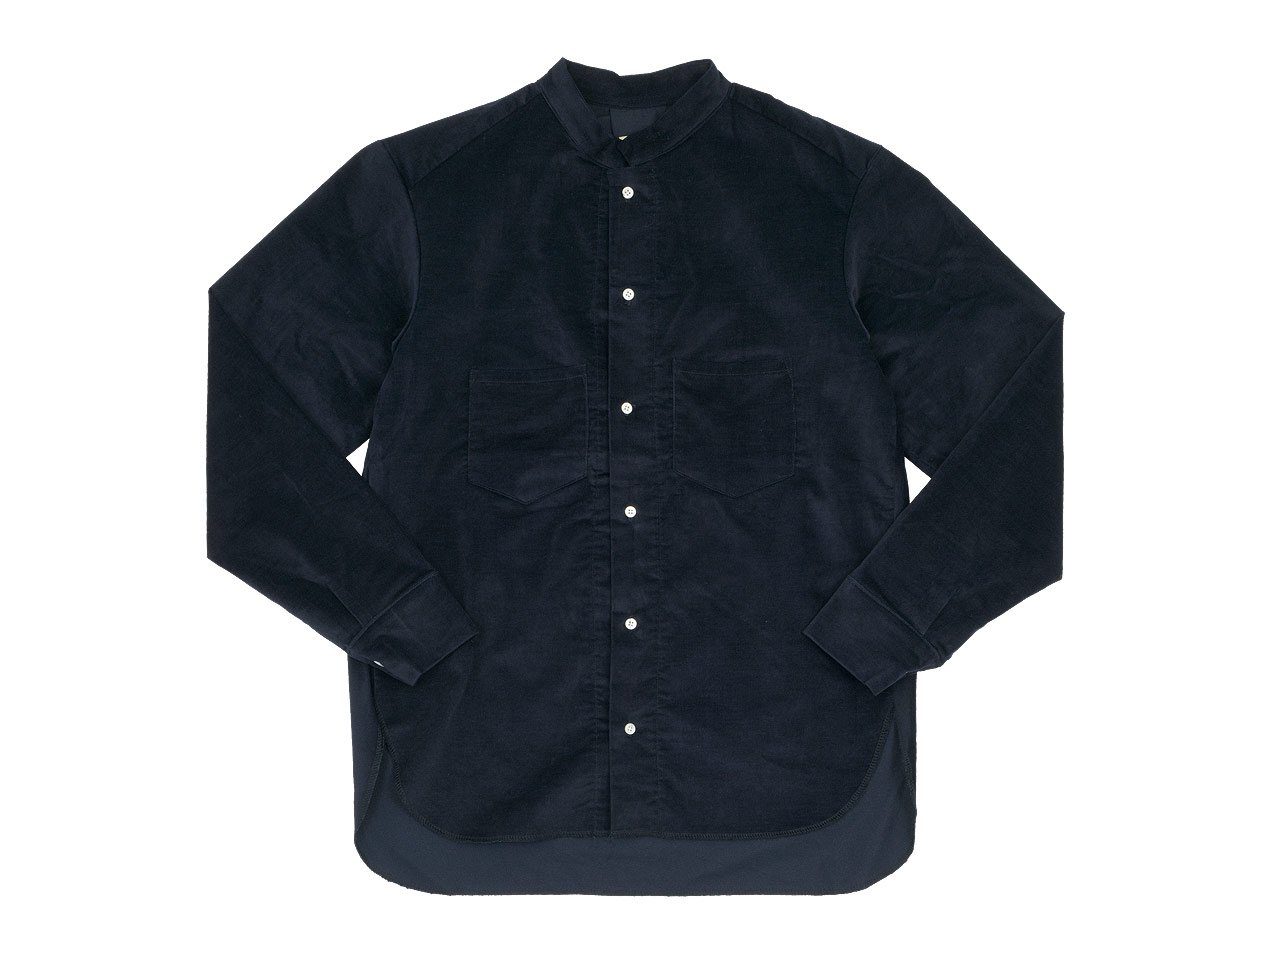 TATAMIZE STAND COLLAR SHIRTS NAVY